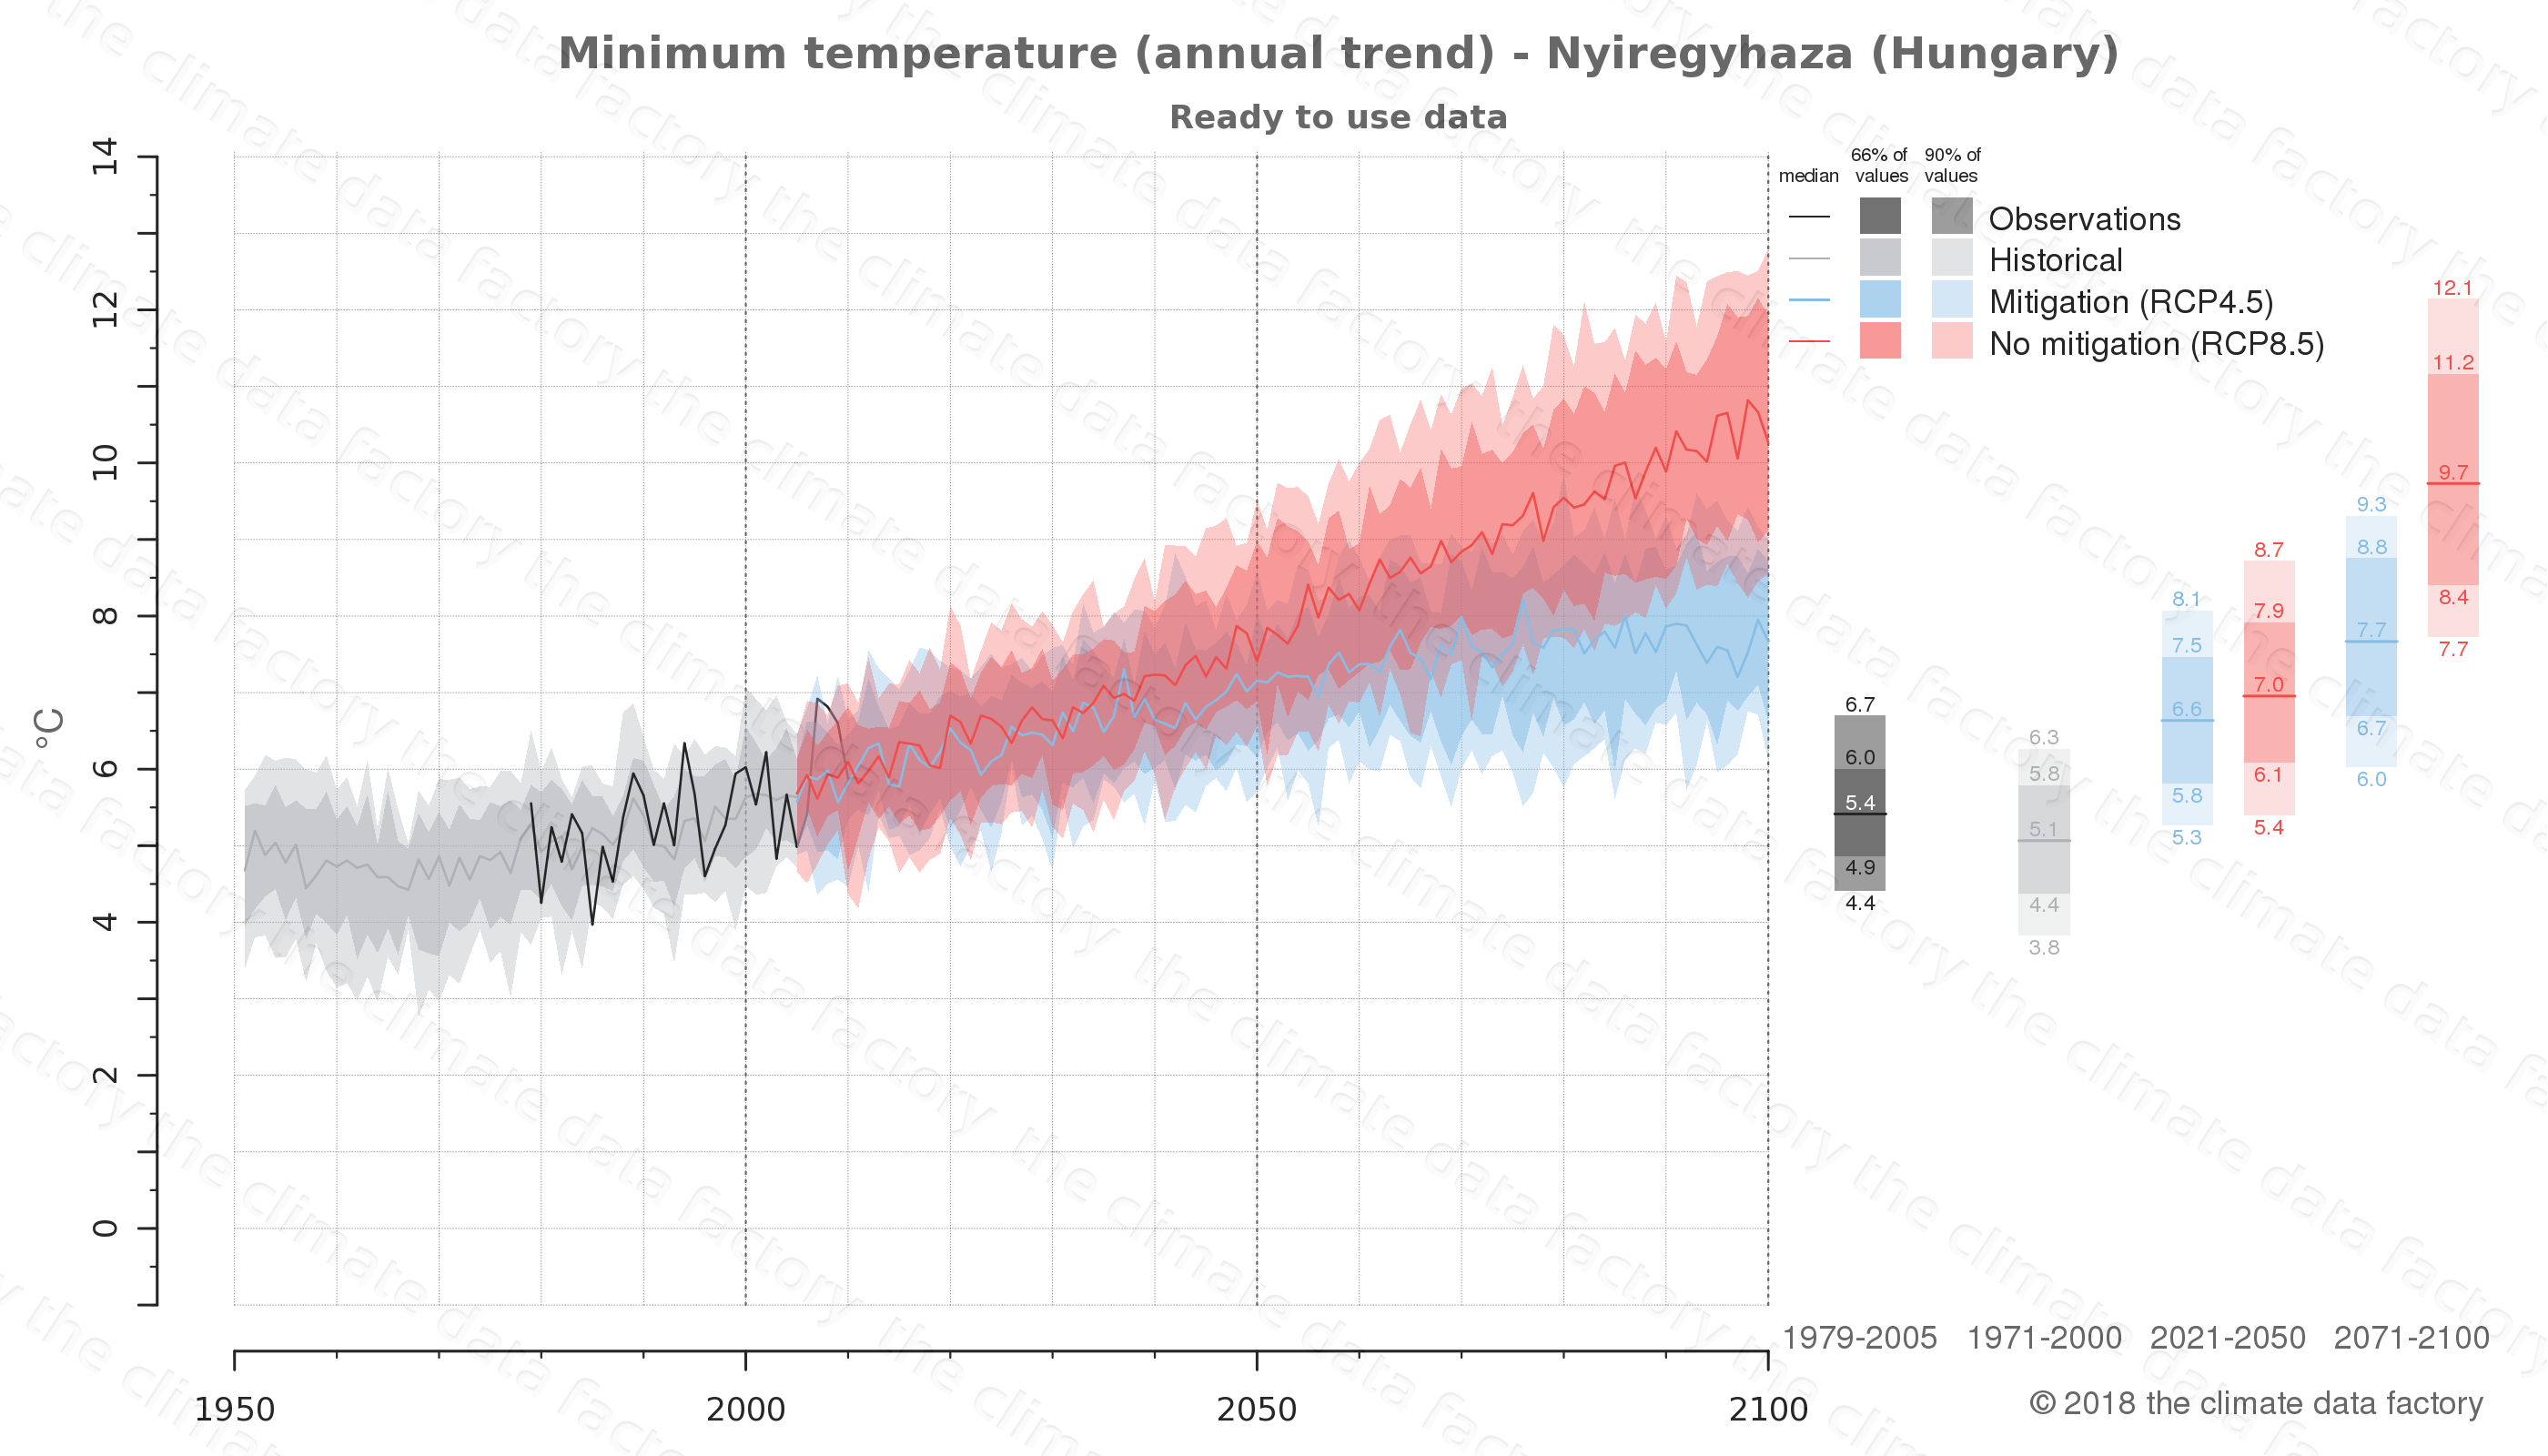 climate change data policy adaptation climate graph city data minimum-temperature nyiregyhaza hungary